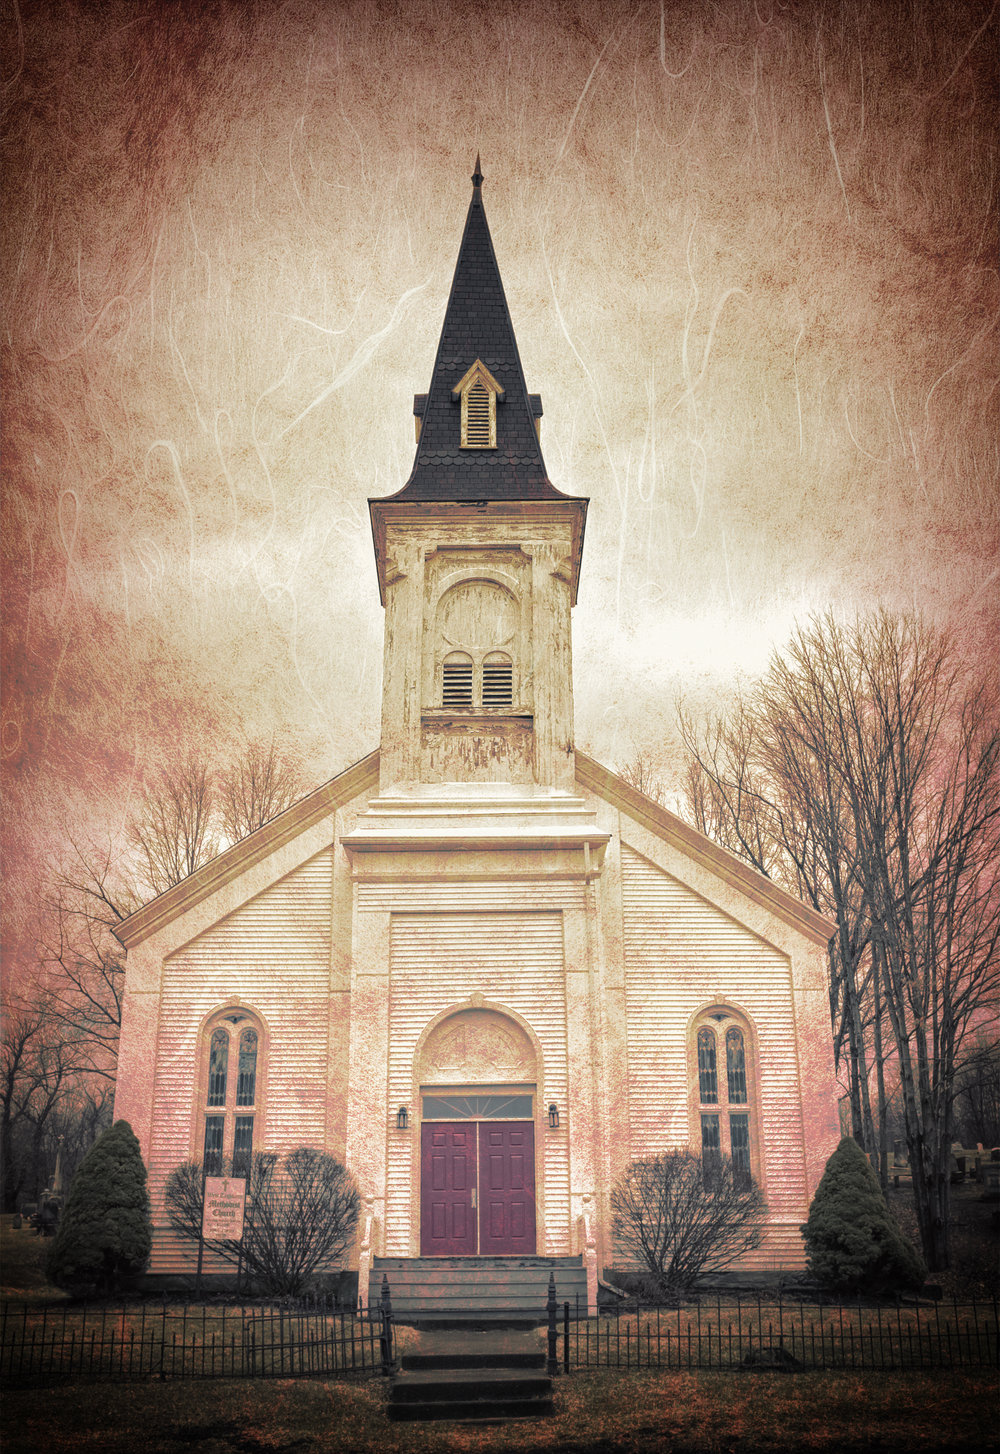 Take Me to Church - Fuji X100T, 1/125 @f/8, +1EV, ISO 400, 23mm - Processed with Topaz Texture Effects